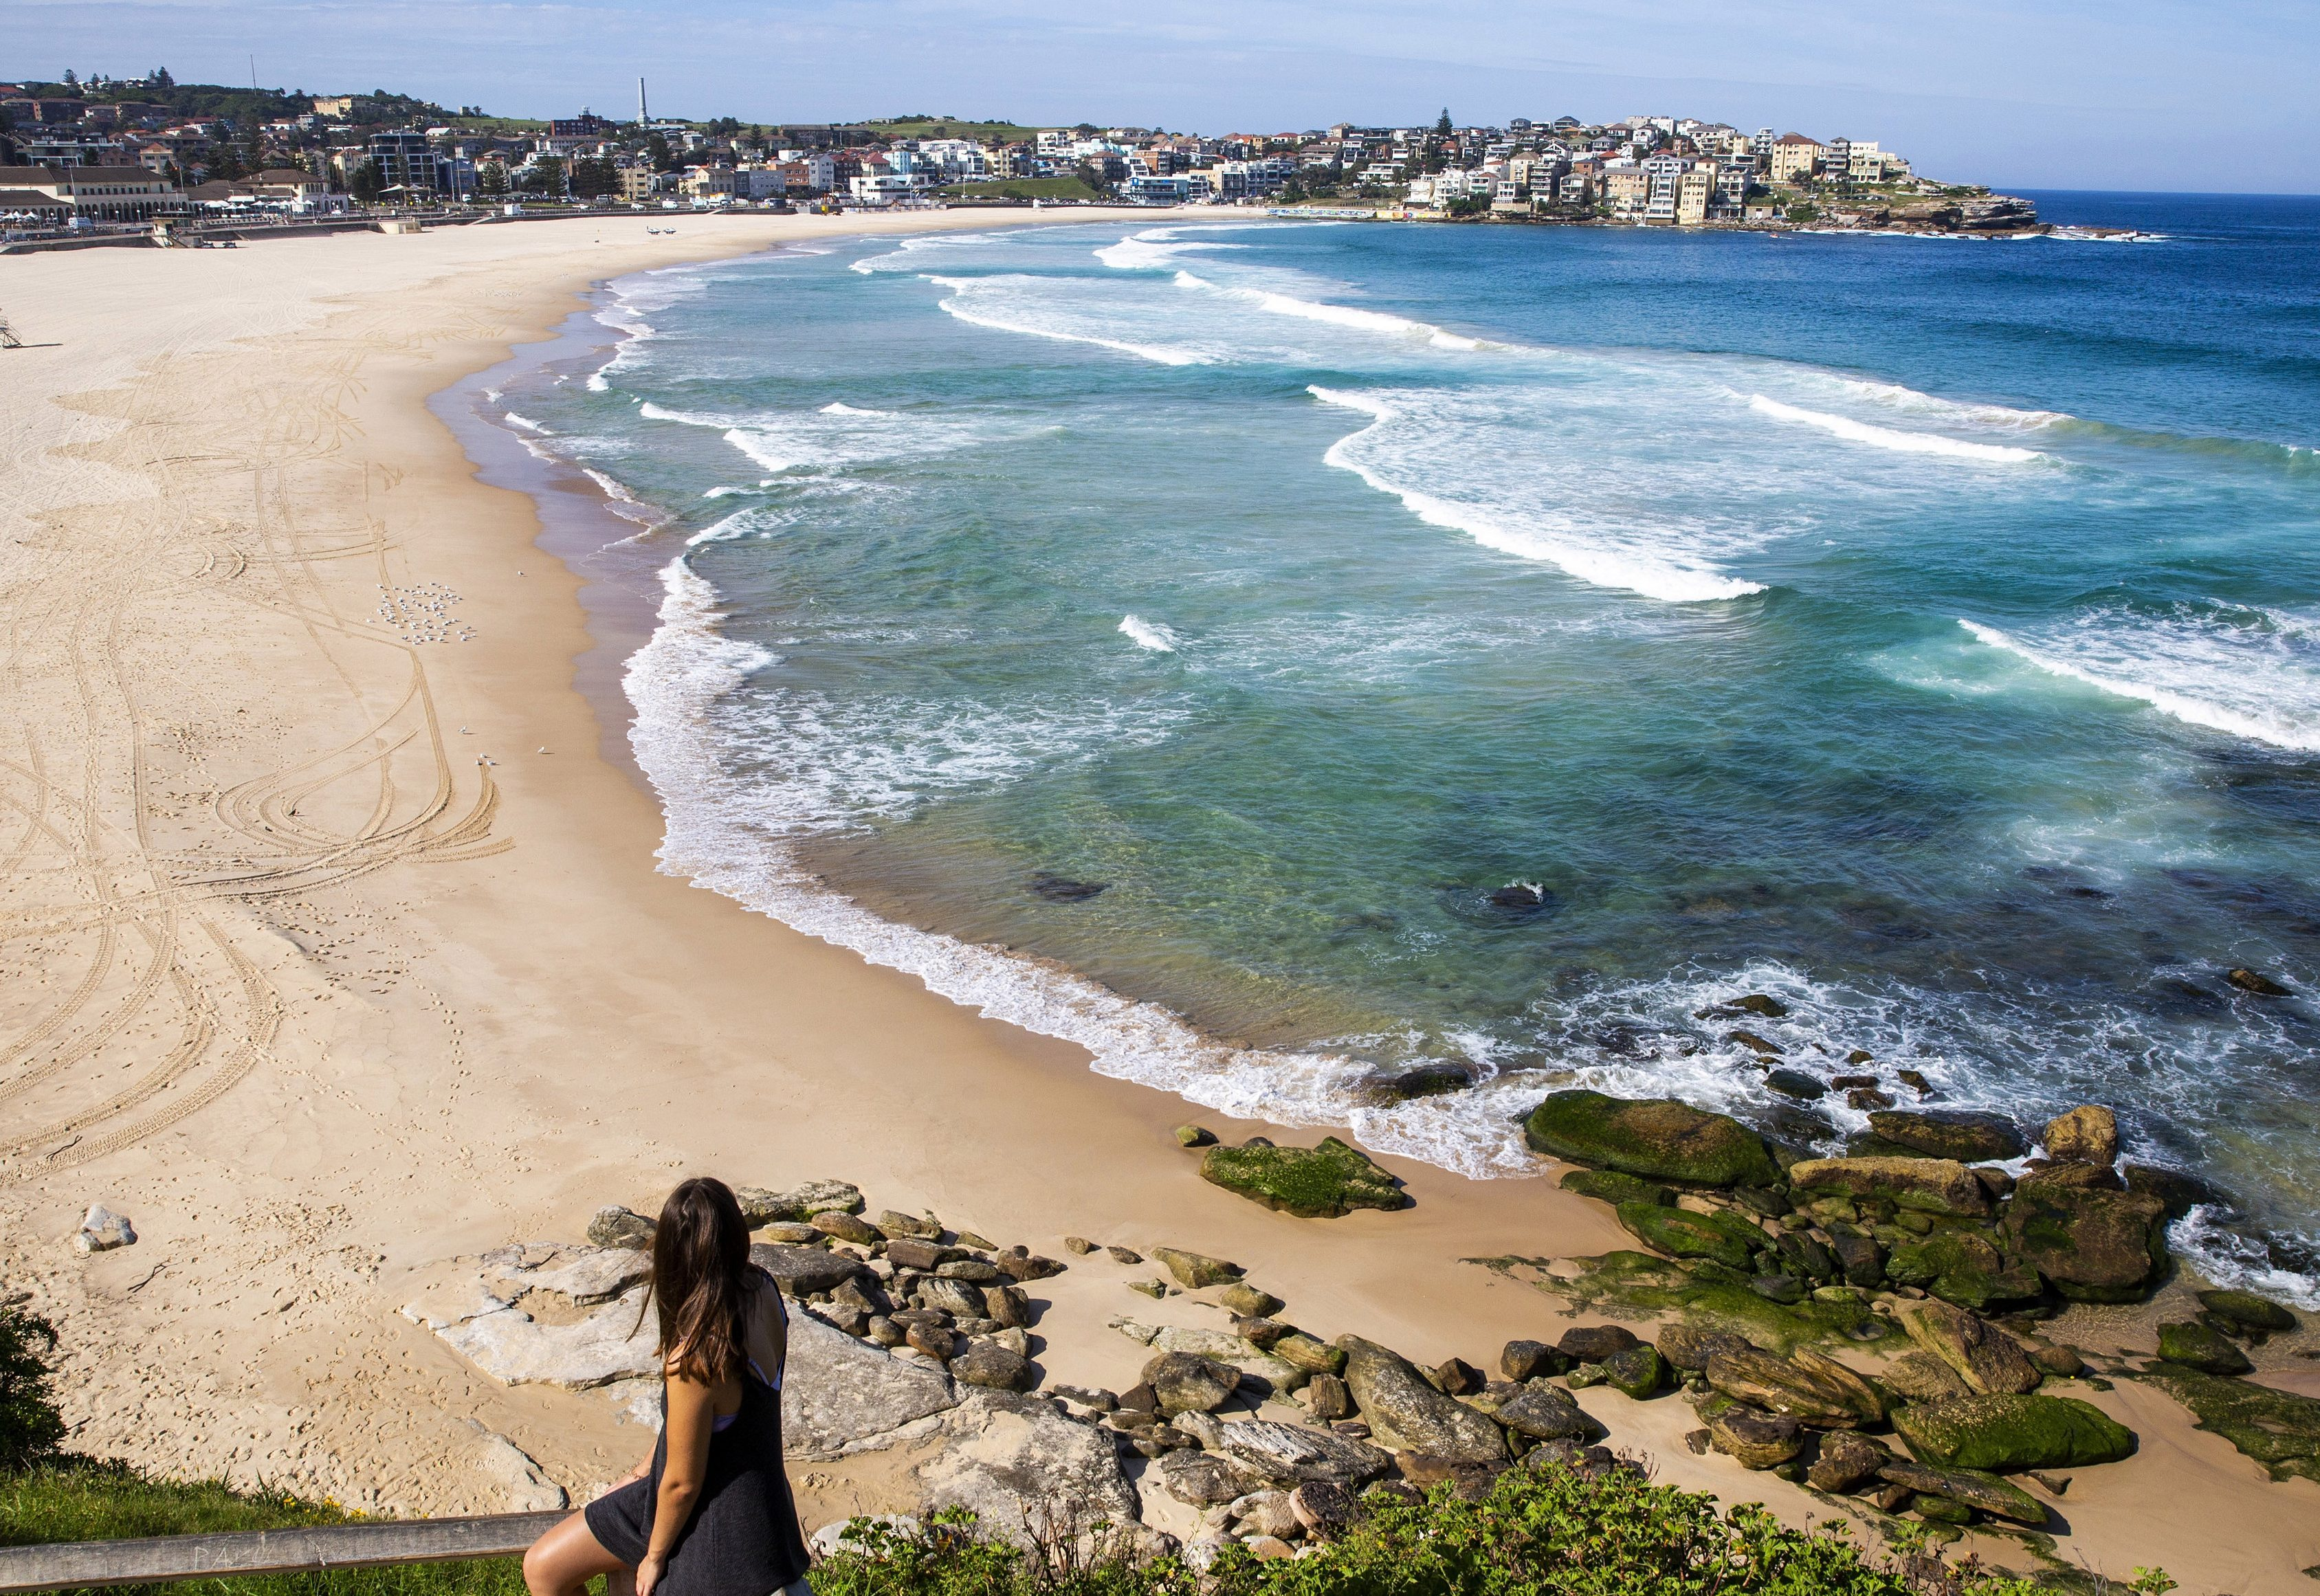 Bondi Beach is empty after being closed down